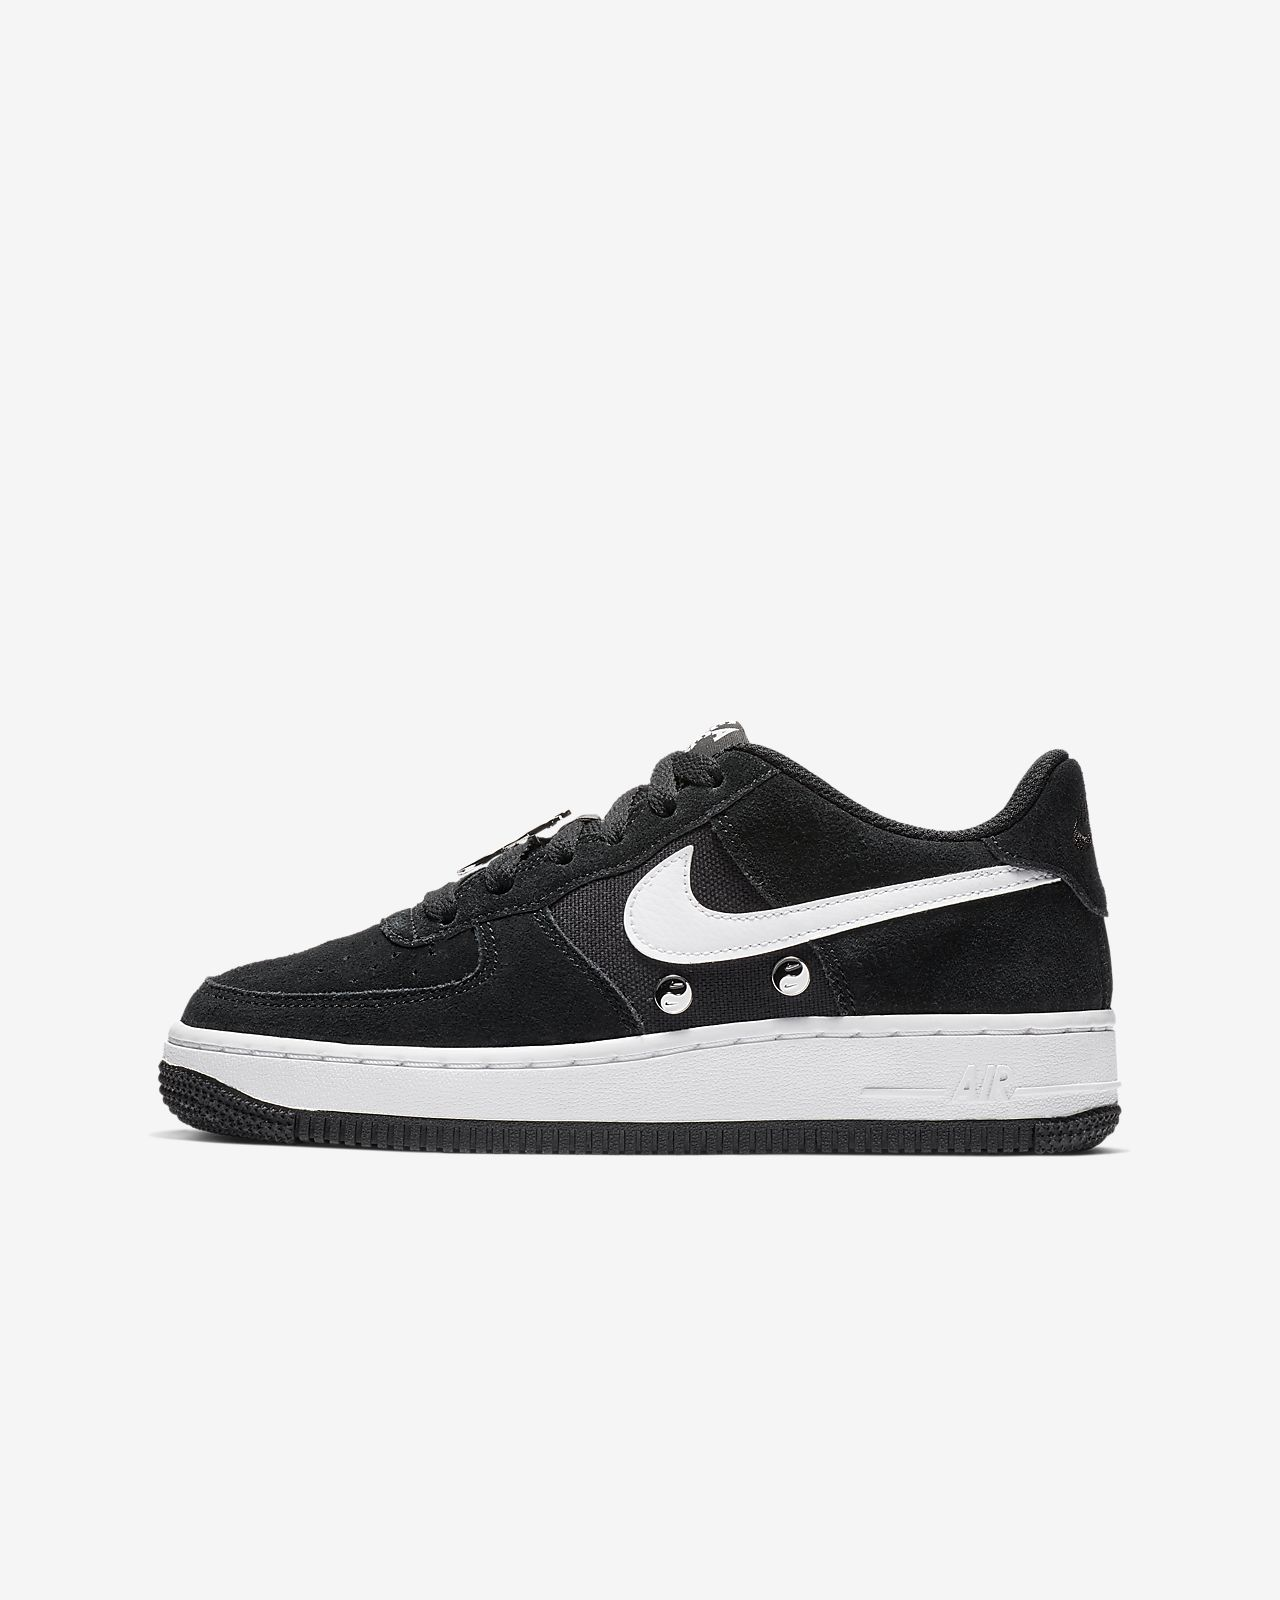 73596de3bb Nike Air Force 1 LV8 Big Kids' Shoe. Nike.com